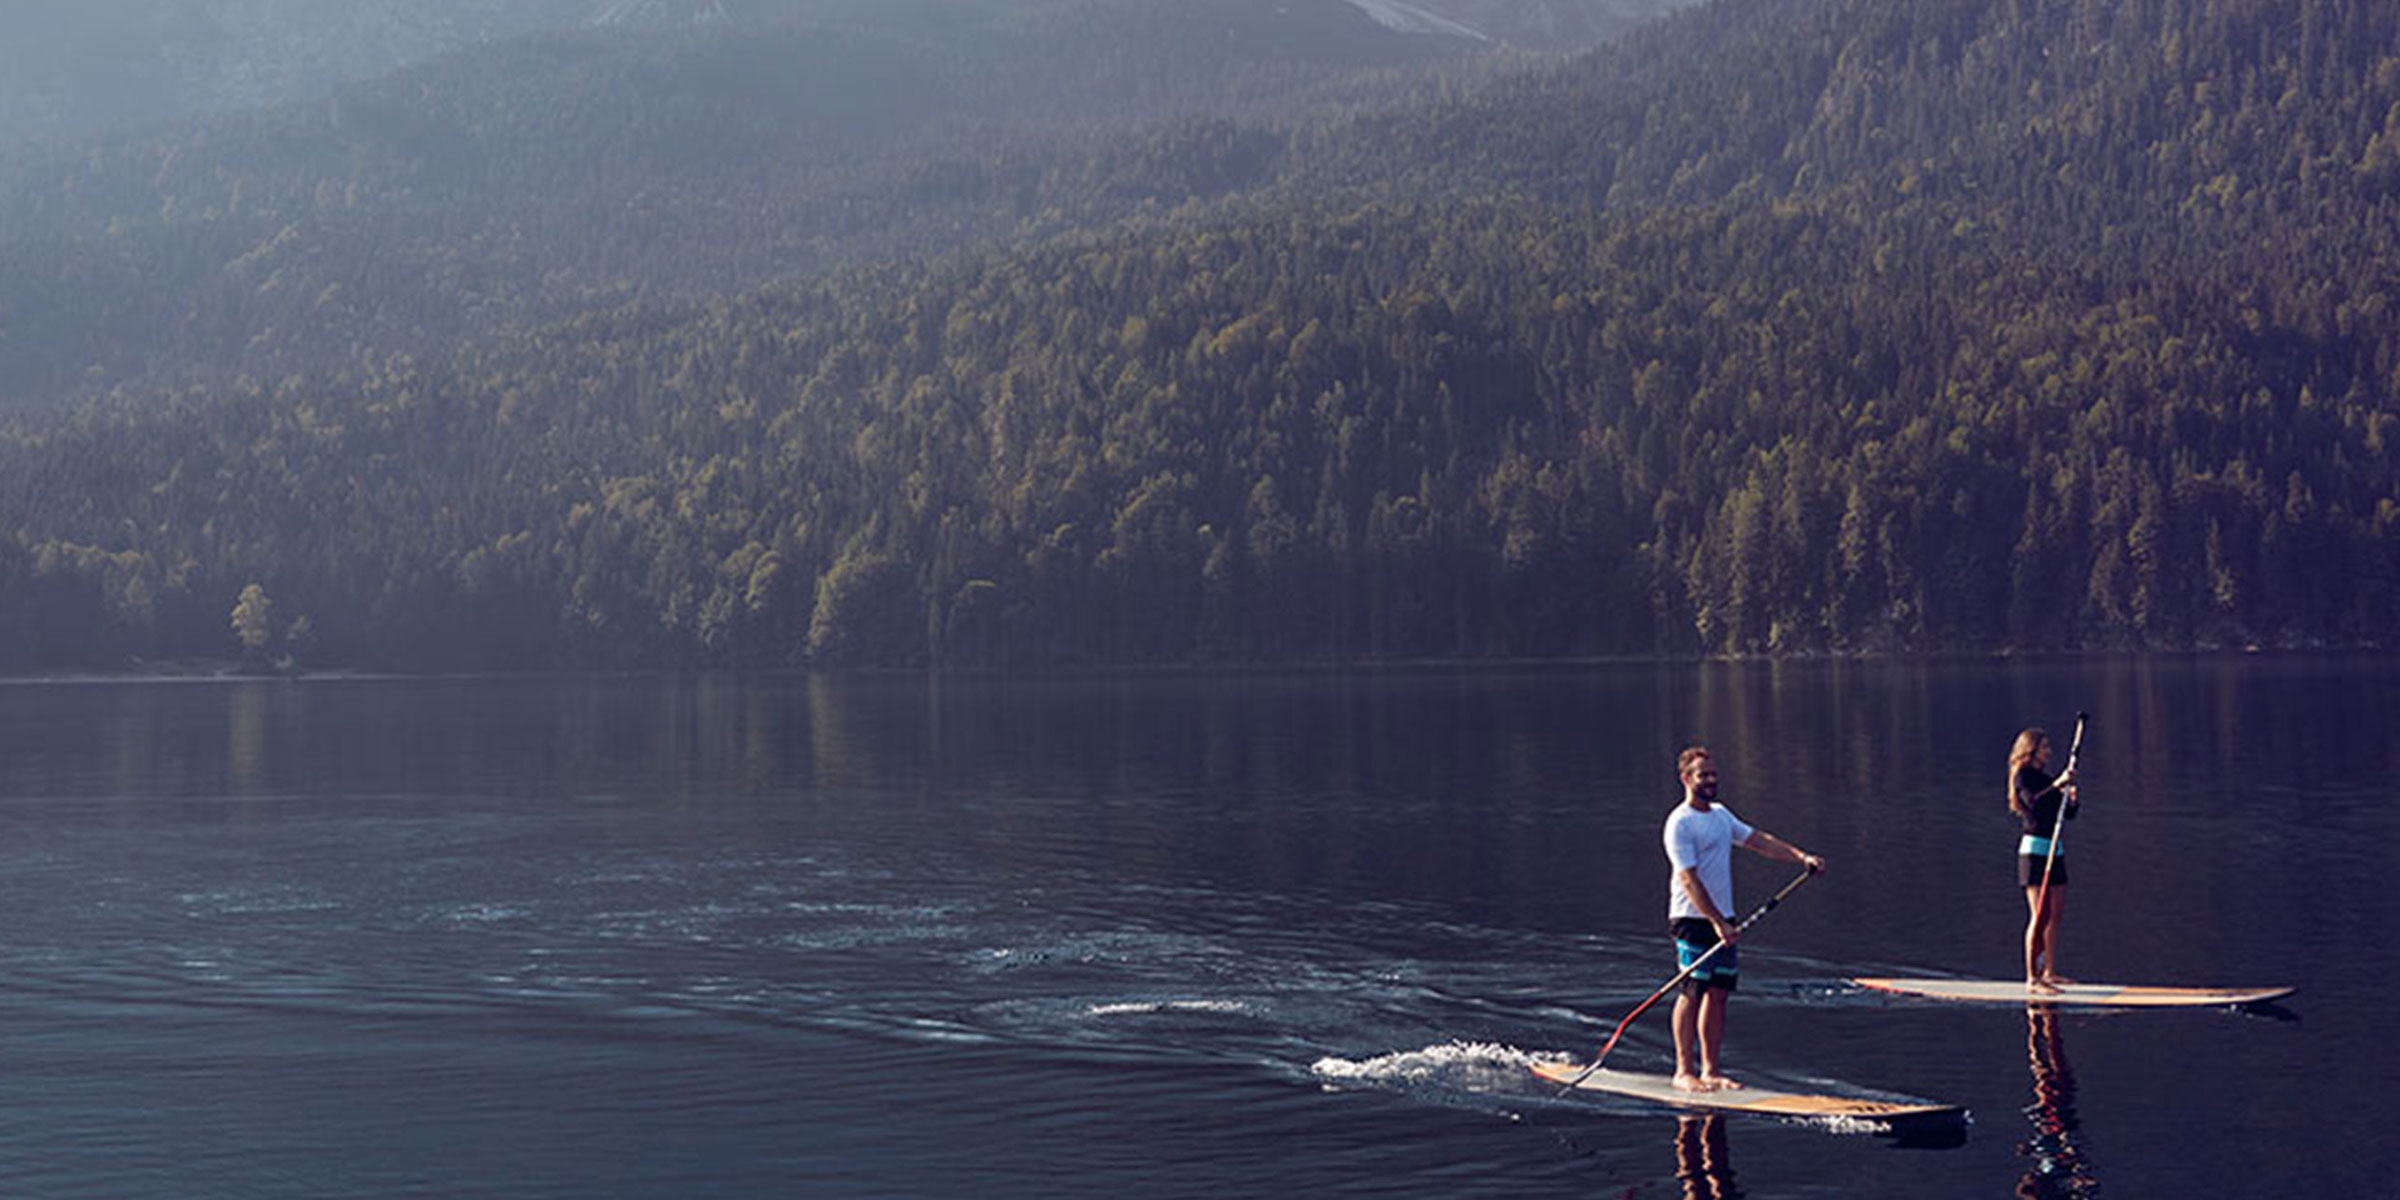 Stand Up. Paddle Out.